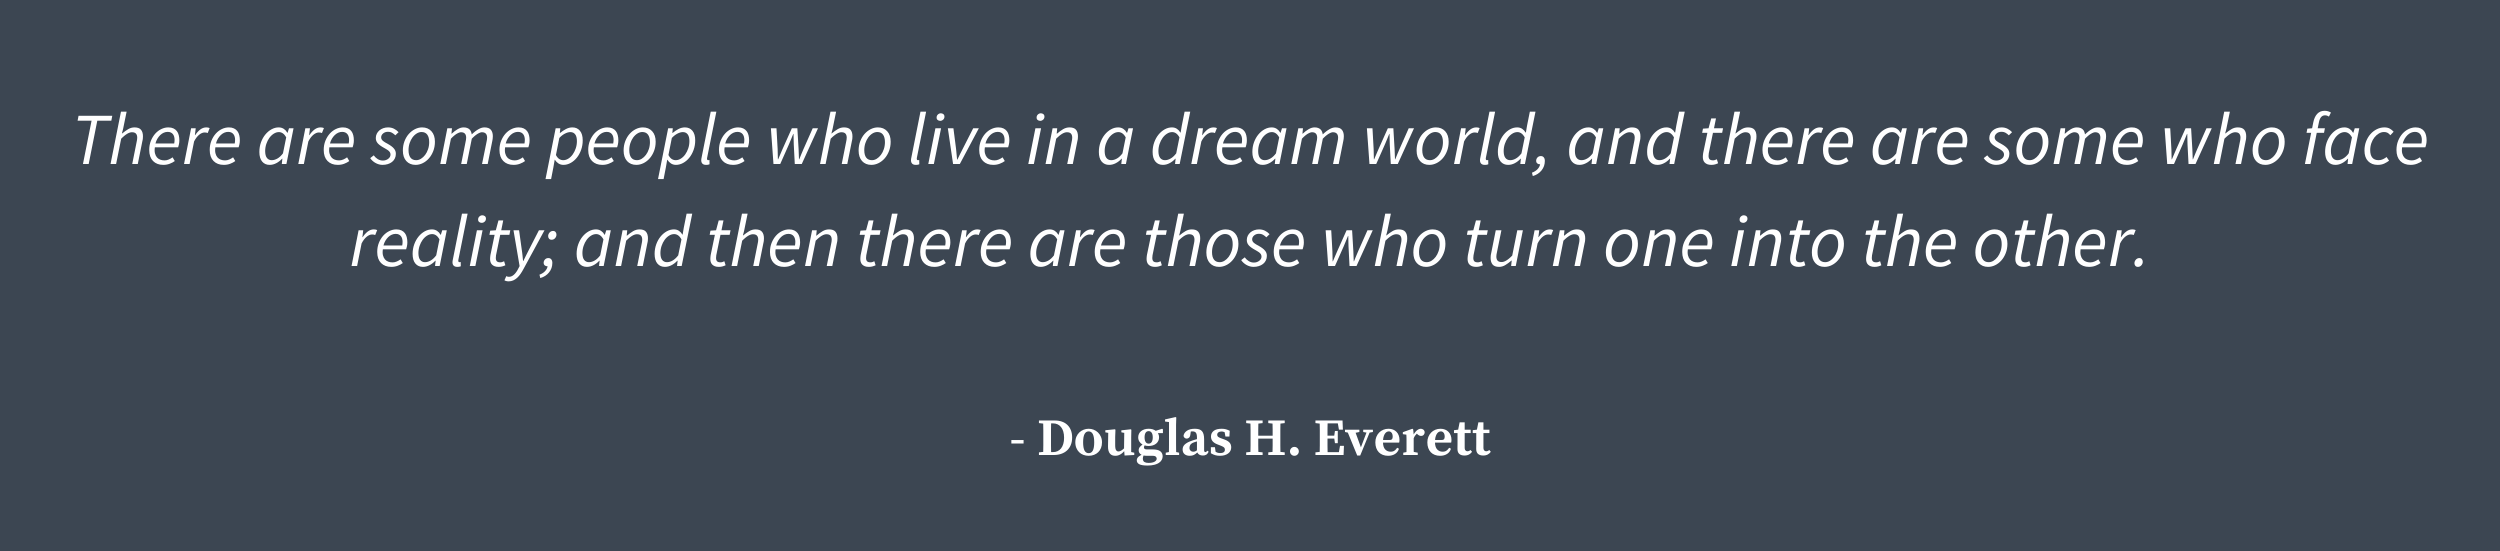 There are some people who live in a dream world, and there are some who face reality; and then there are those who turn one into the other.  warrior medicine quote Douglas H. Everett